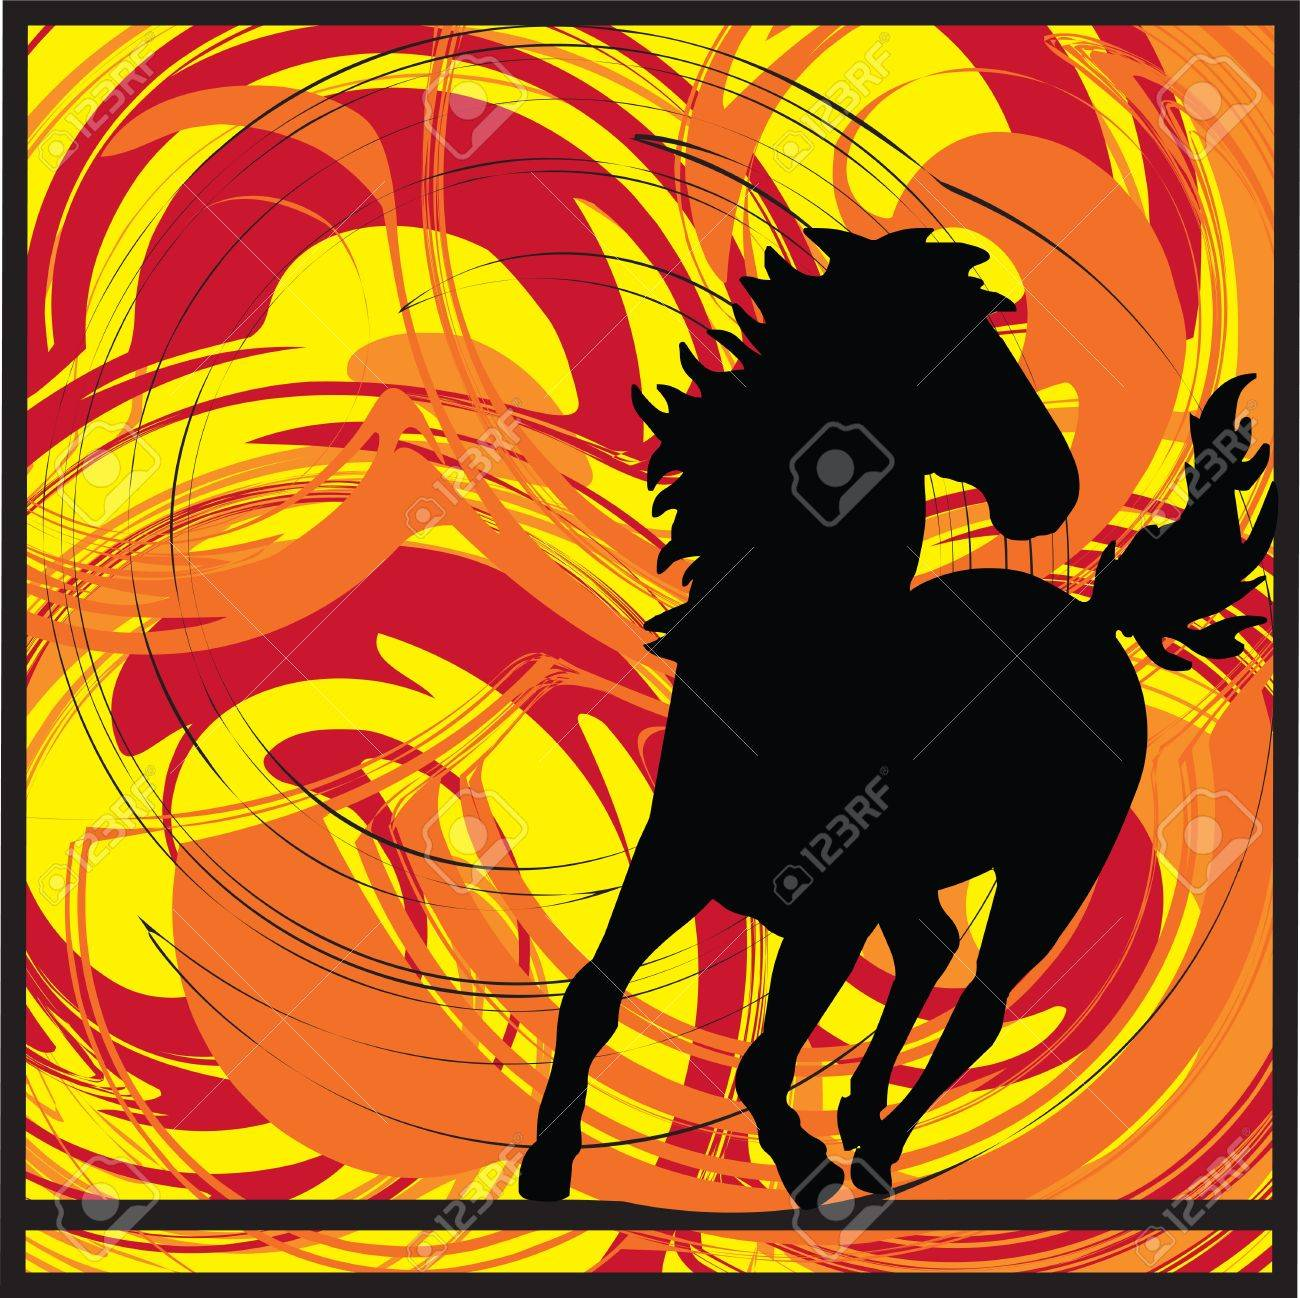 abstract horse illustration - 16762896